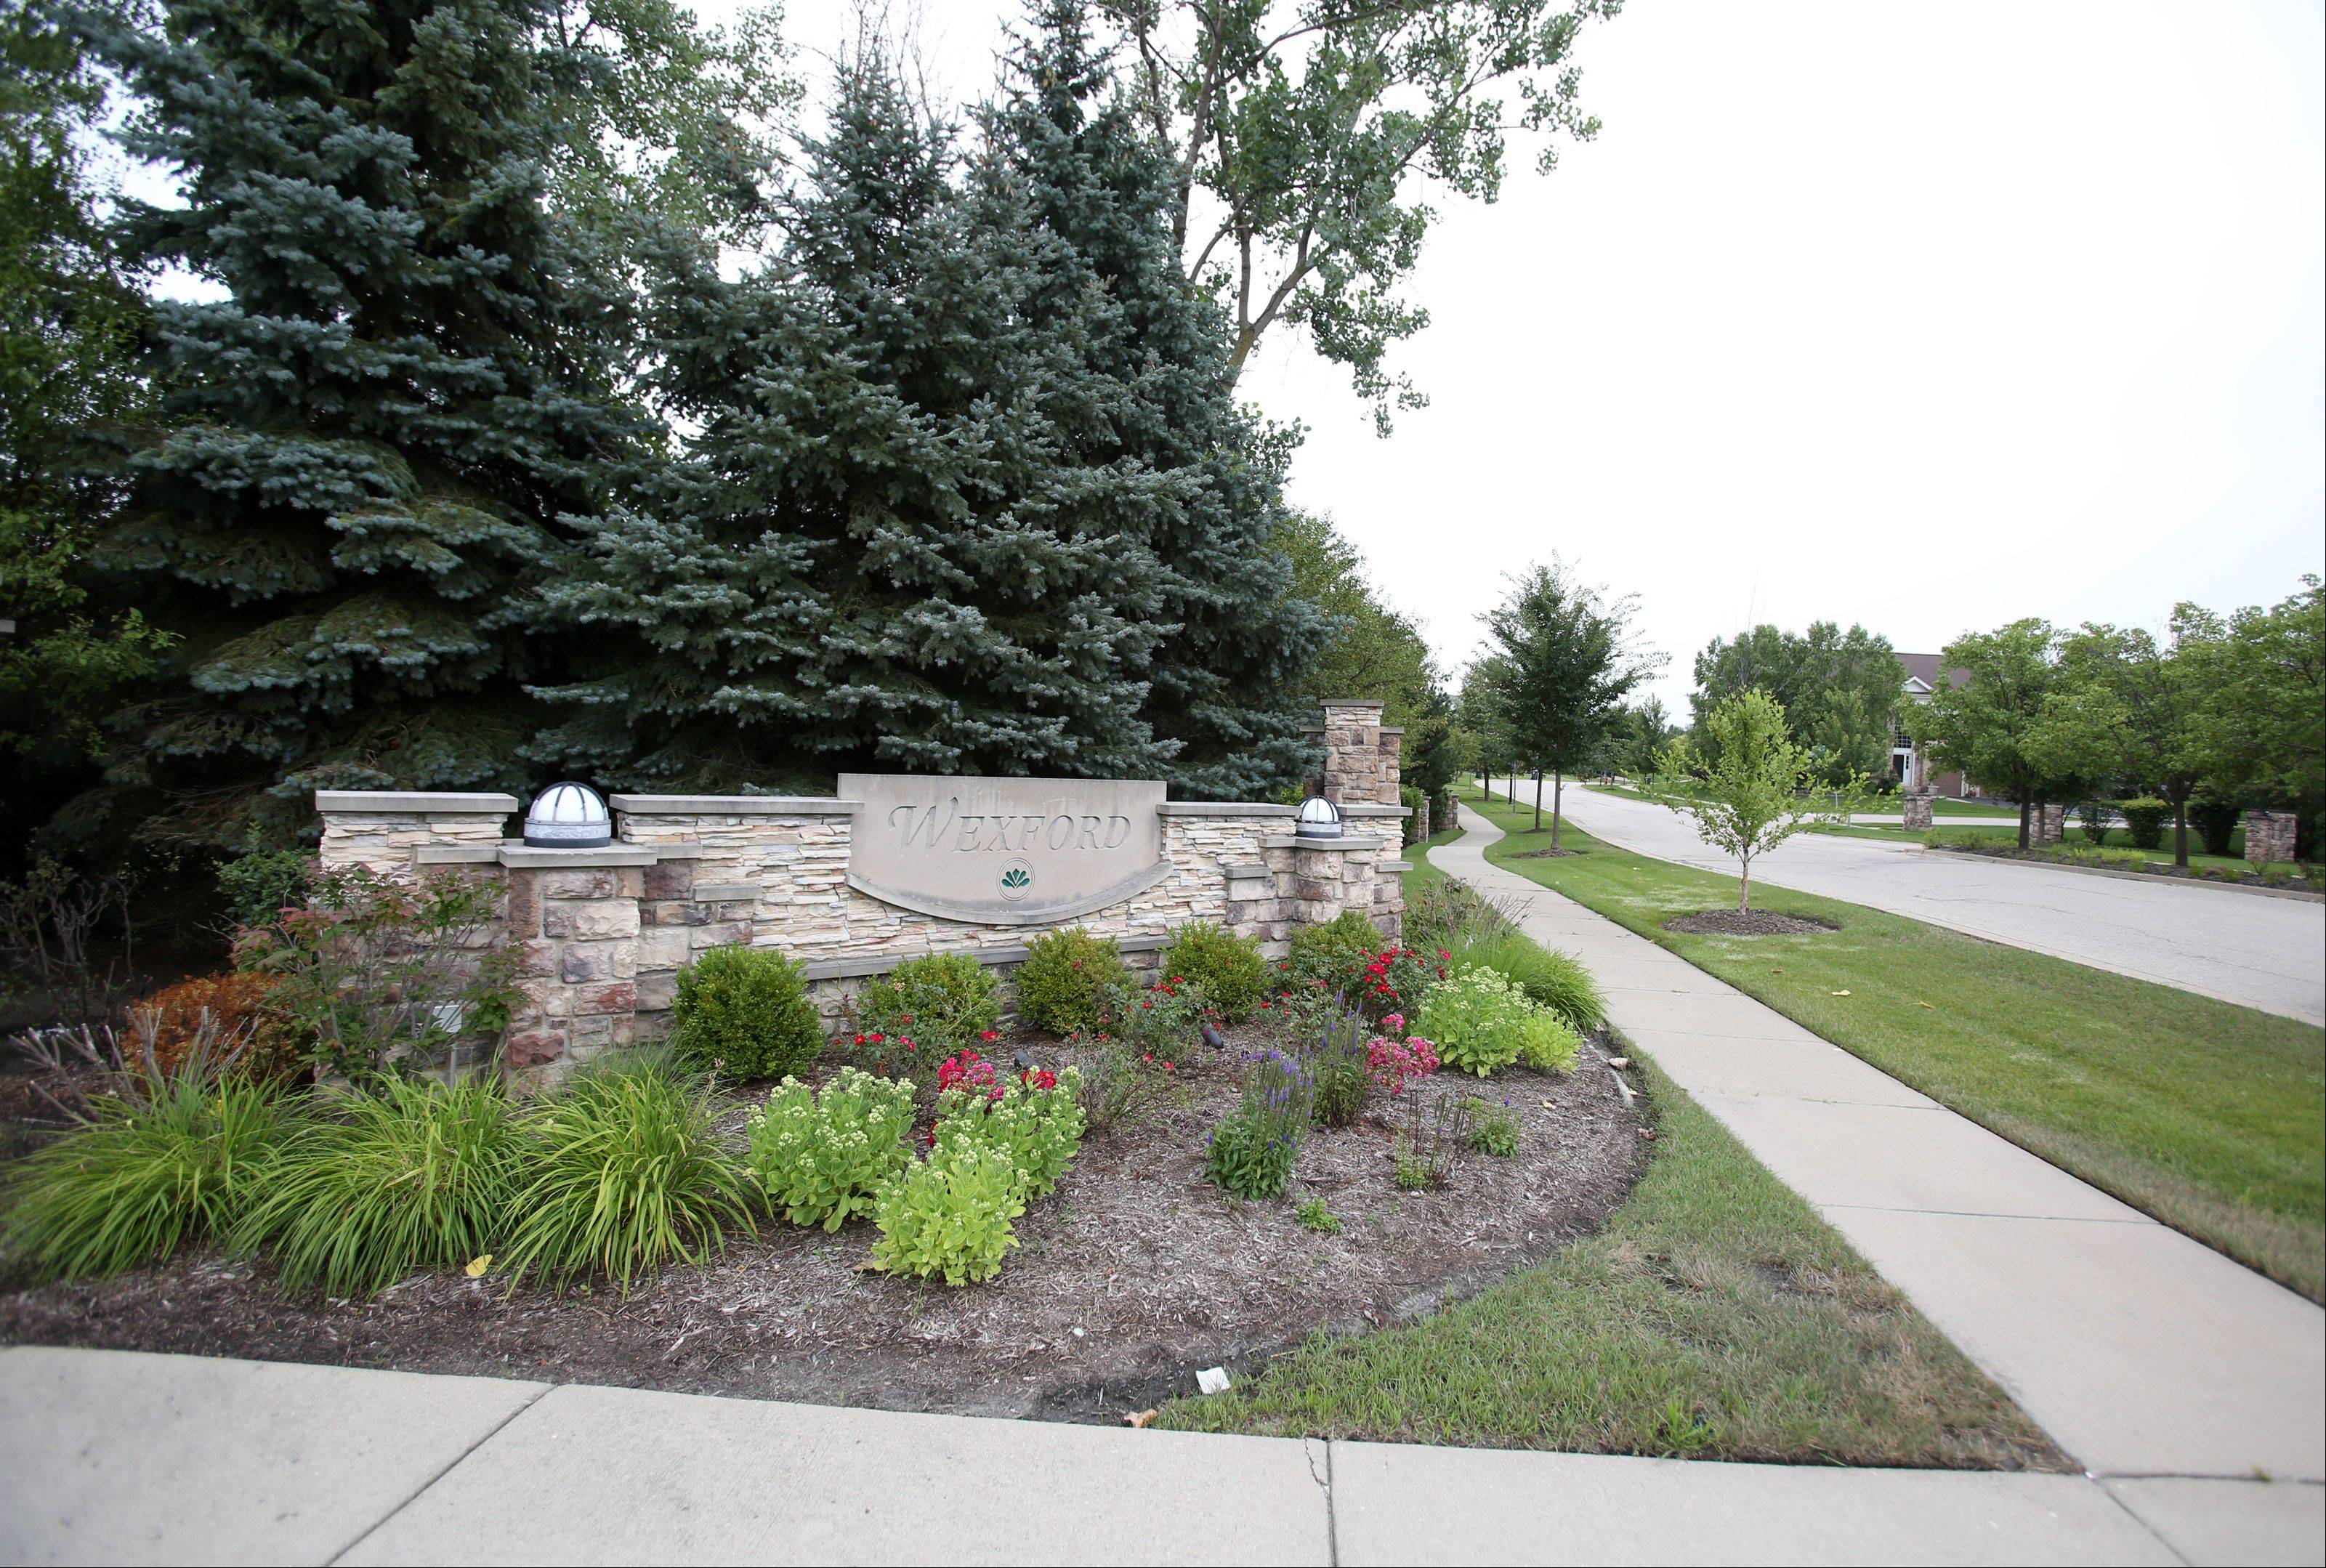 The Wexford subdivision along Euclid Avenue straddles the line between Palatine and Rolling Meadows.